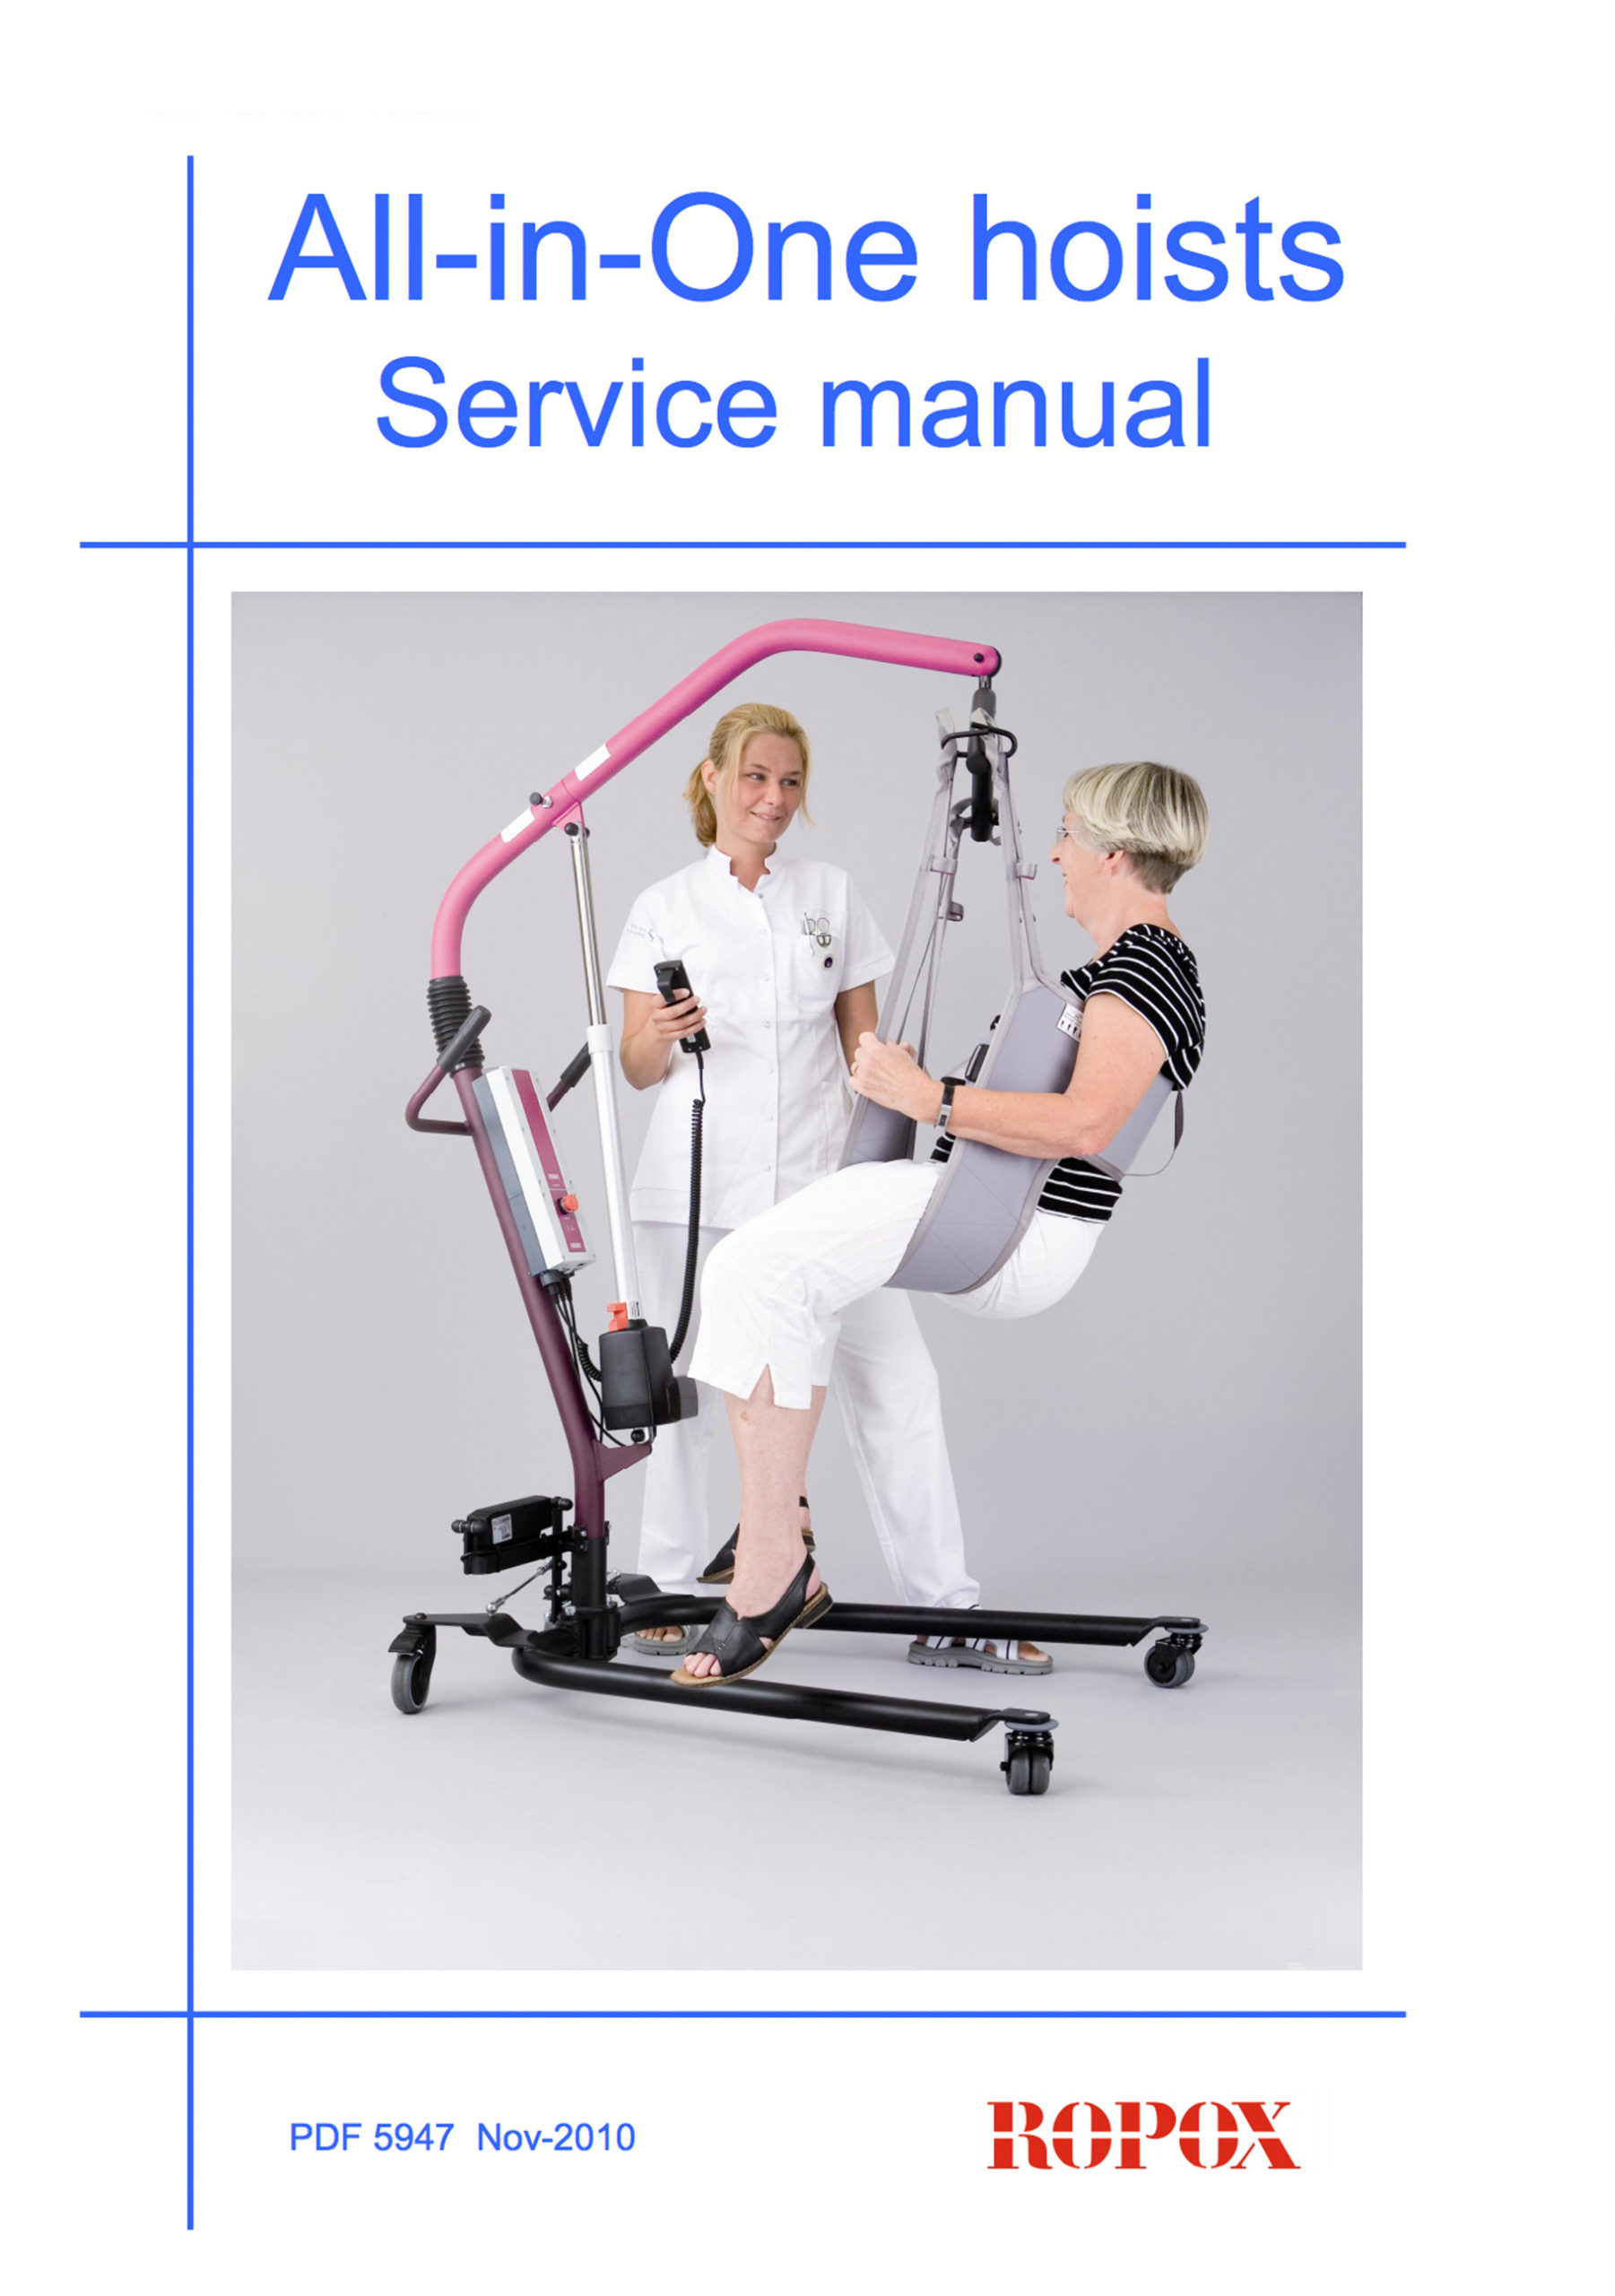 Service manual All-in-One hoists